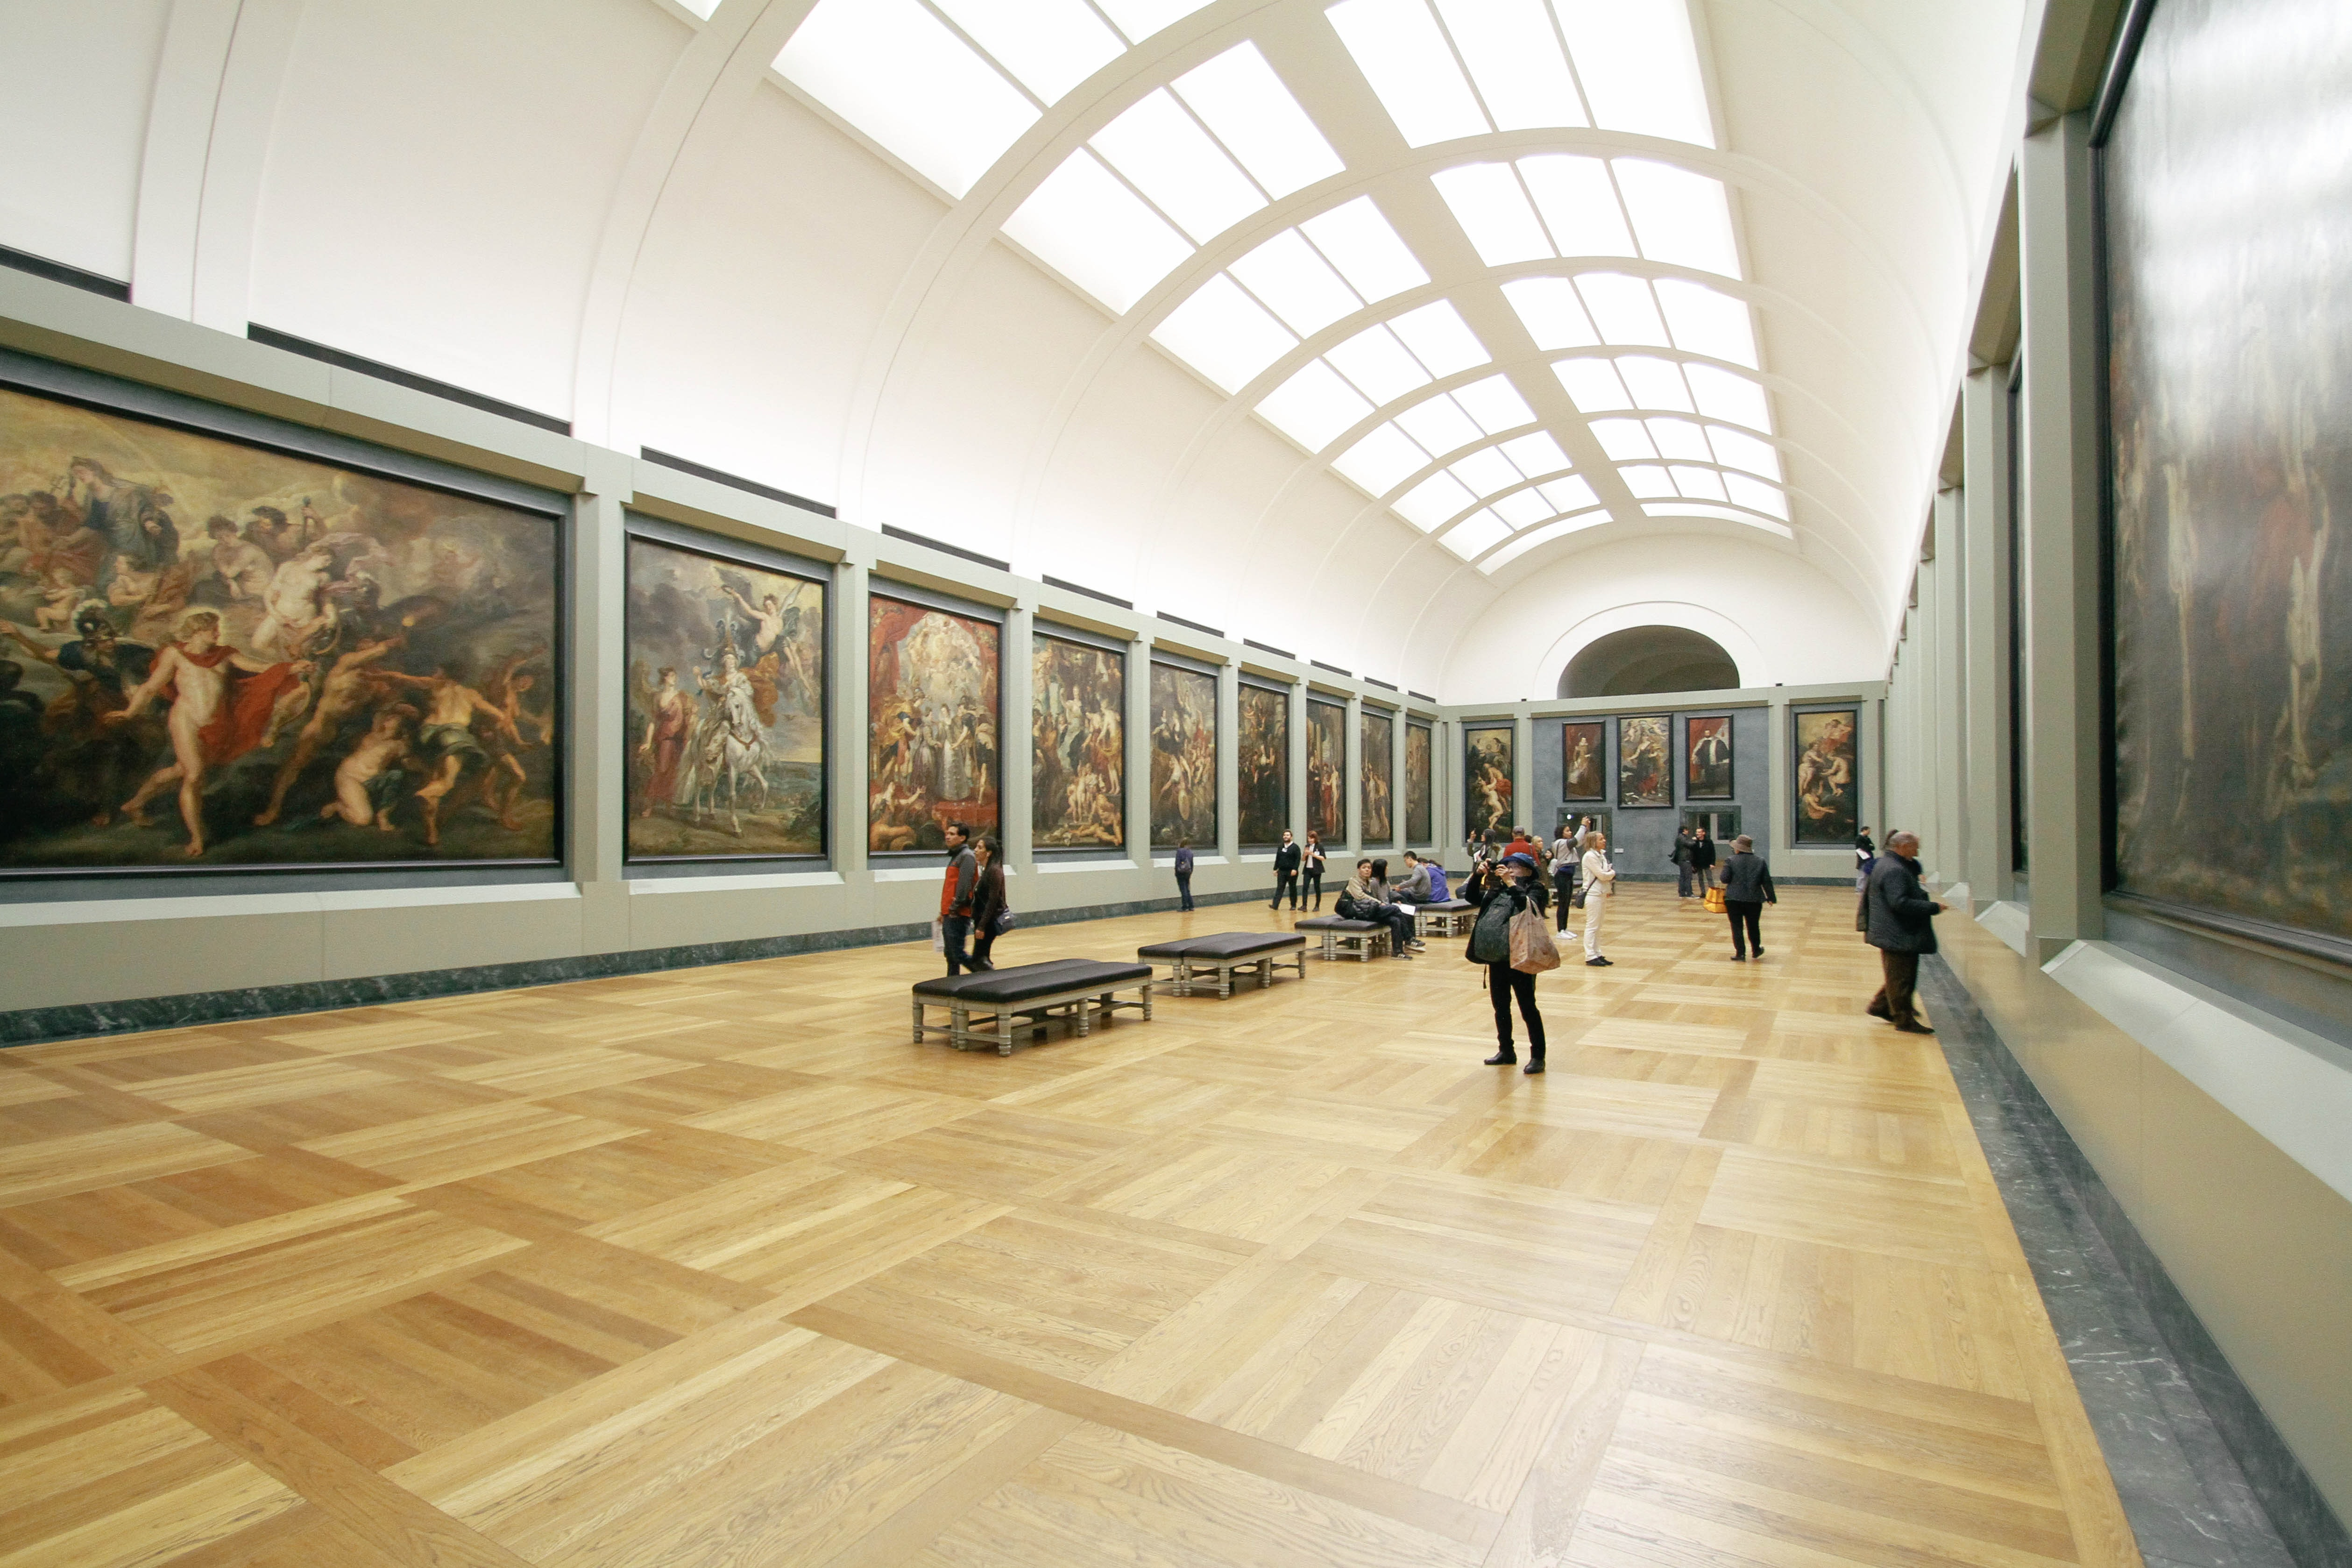 Commercial Painting in Museums